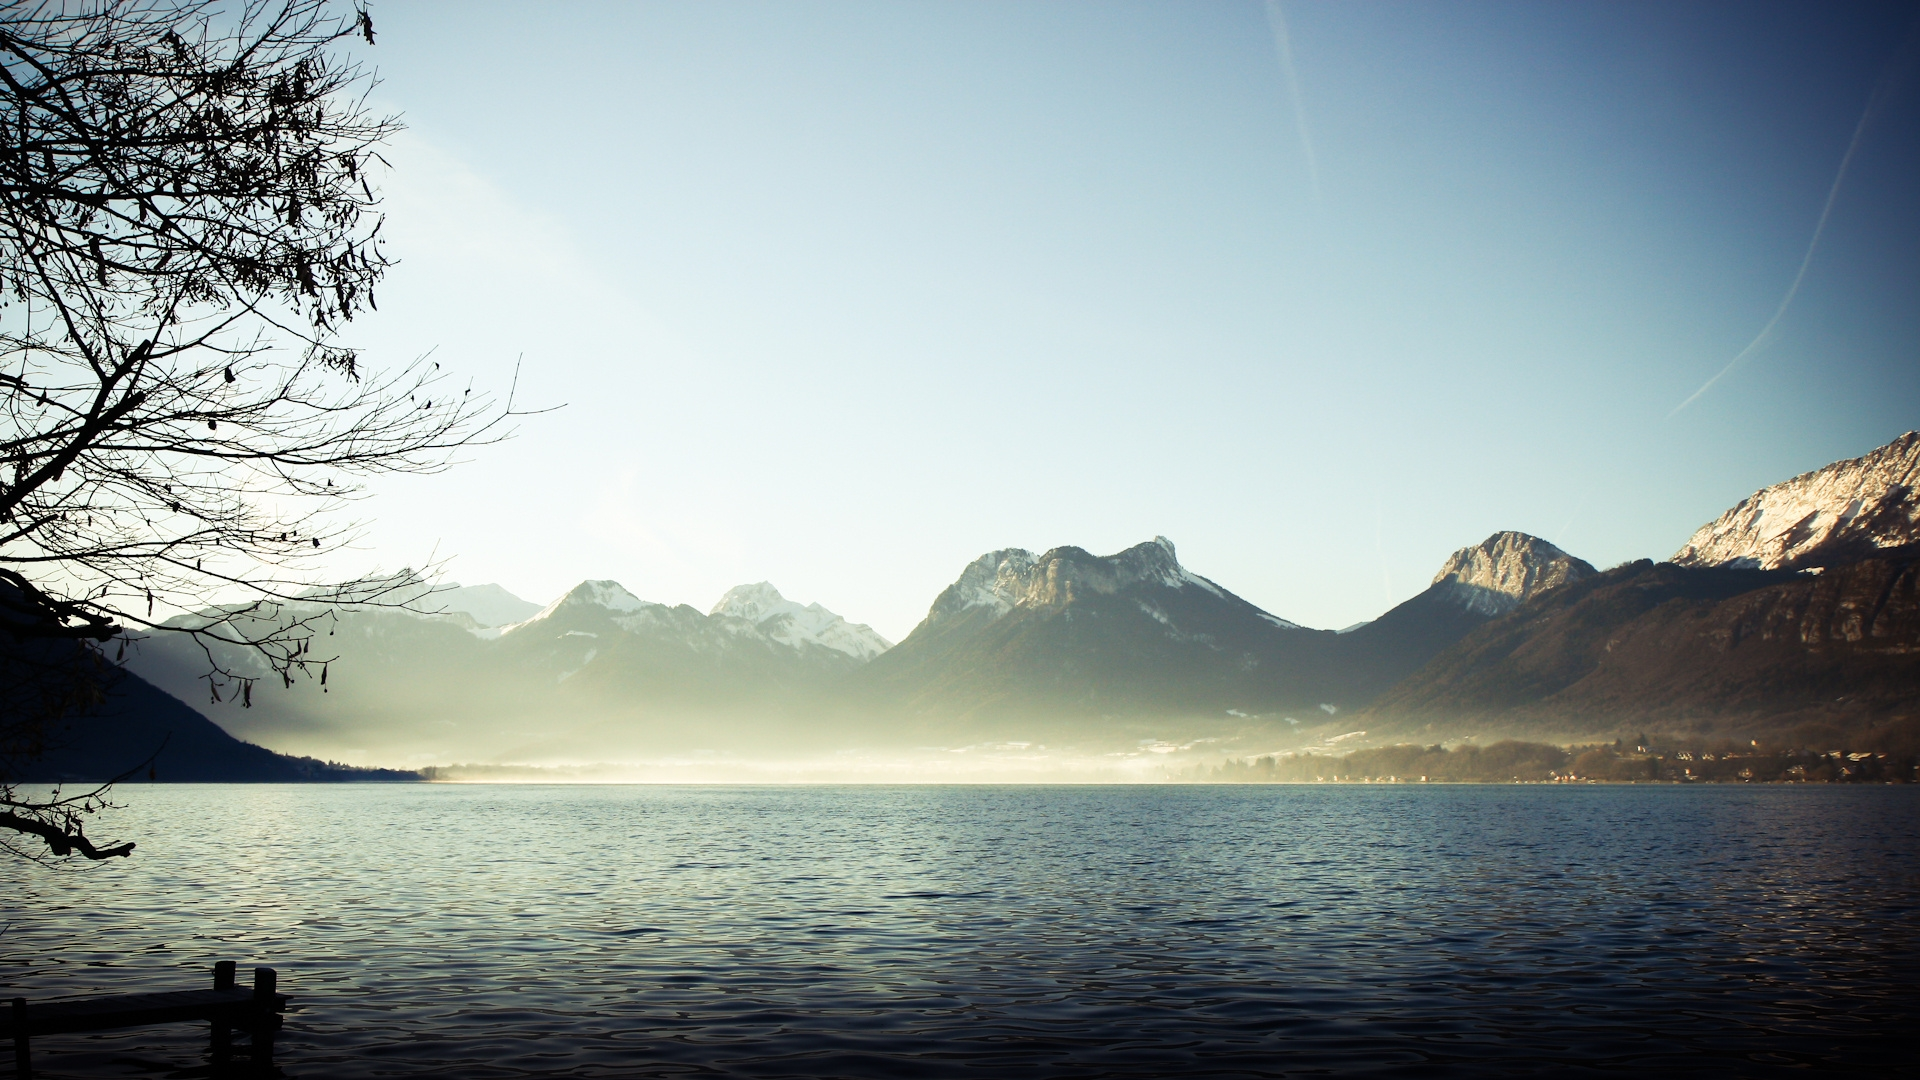 mountains_fog_lake_branches_silence_48345_1920x1080